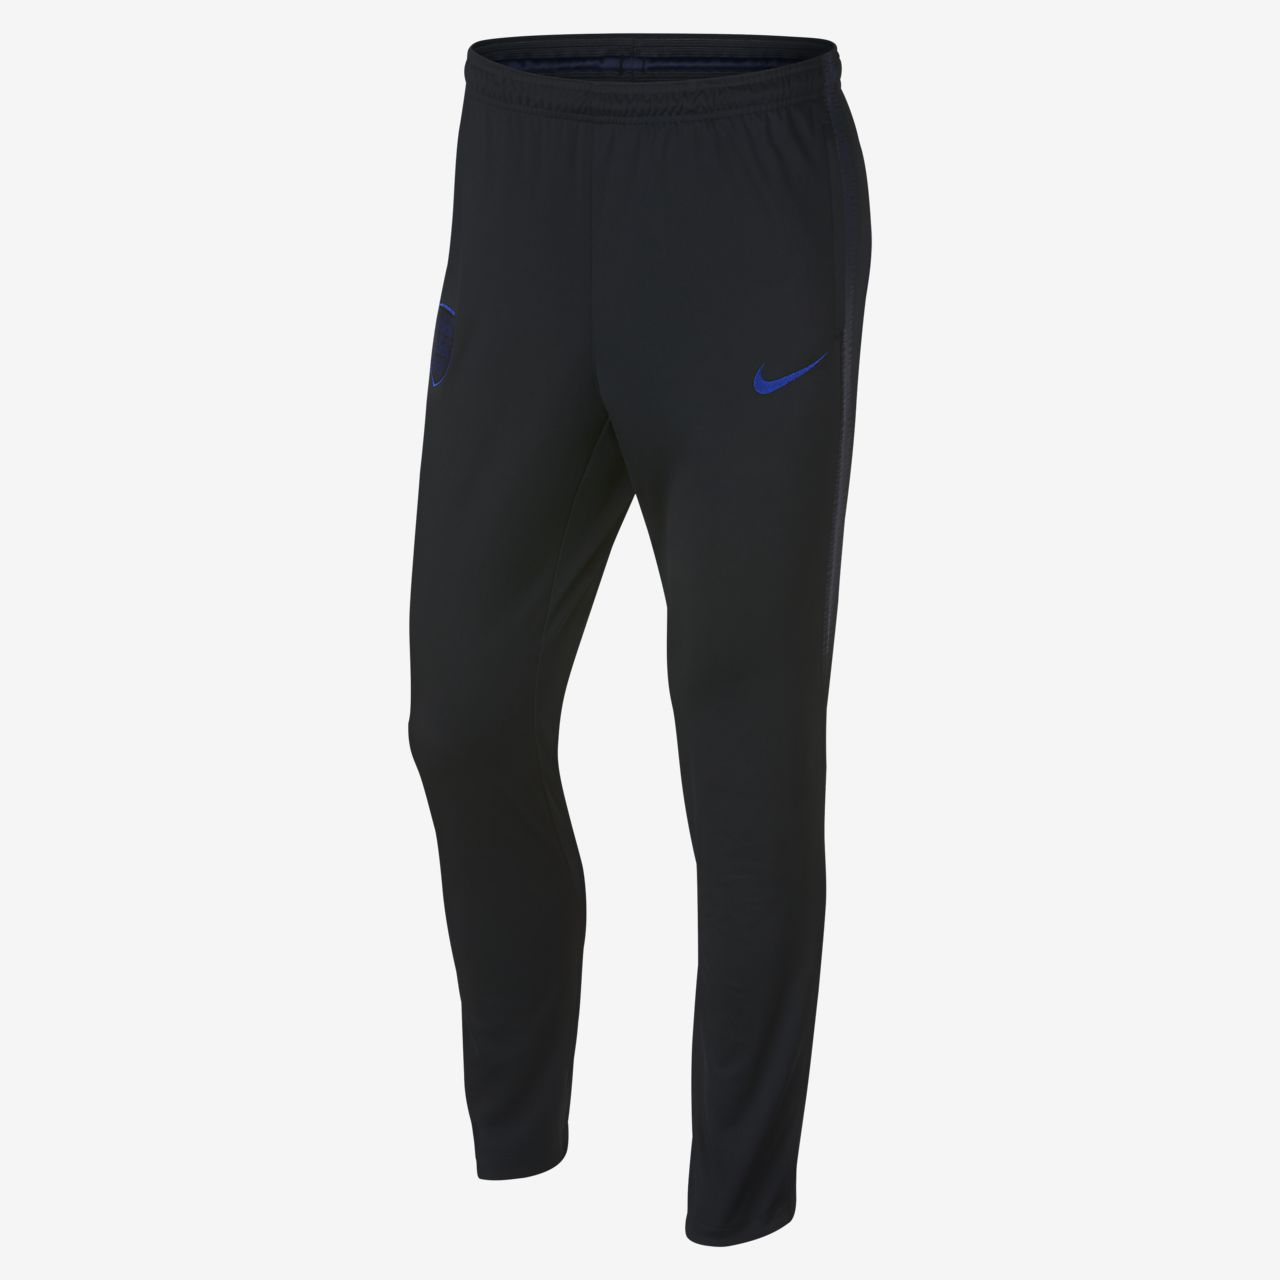 7f0a04cee England Dri-FIT Squad Men's Football Track Pants. Nike.com GB